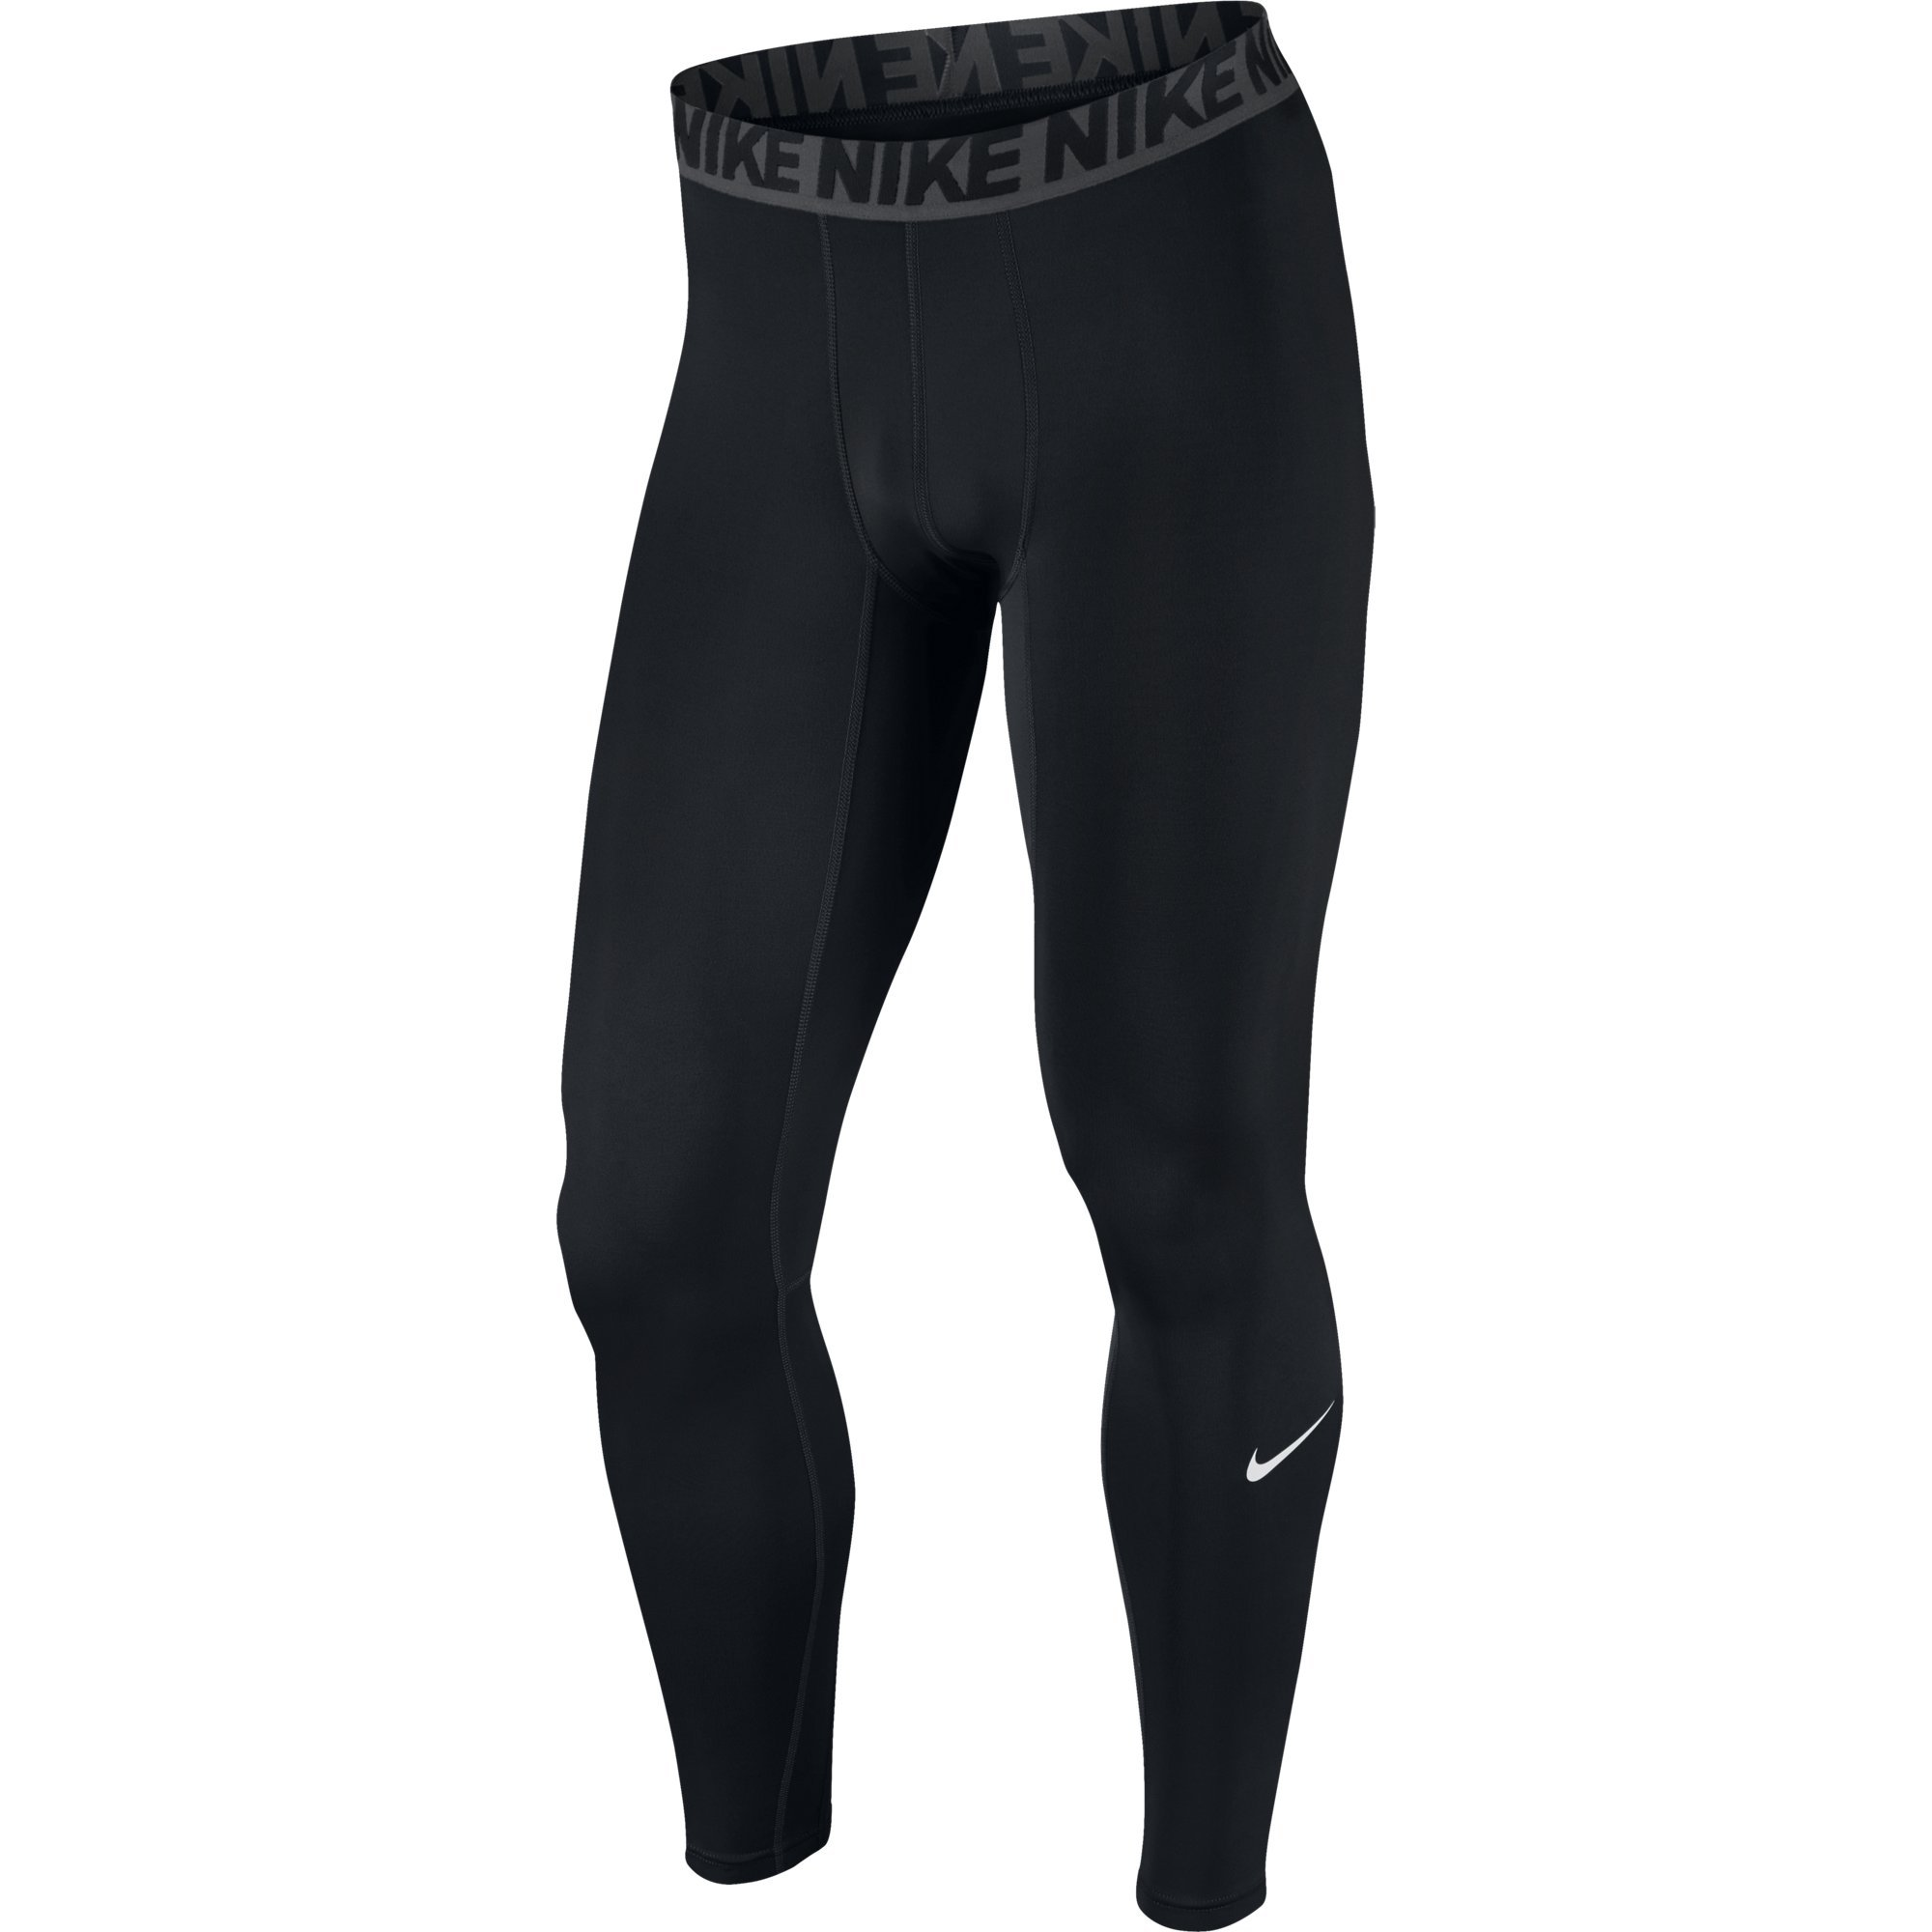 NIKE Men's Base Layer Training Tights, Black/Dark Grey/White, Medium by Nike (Image #1)